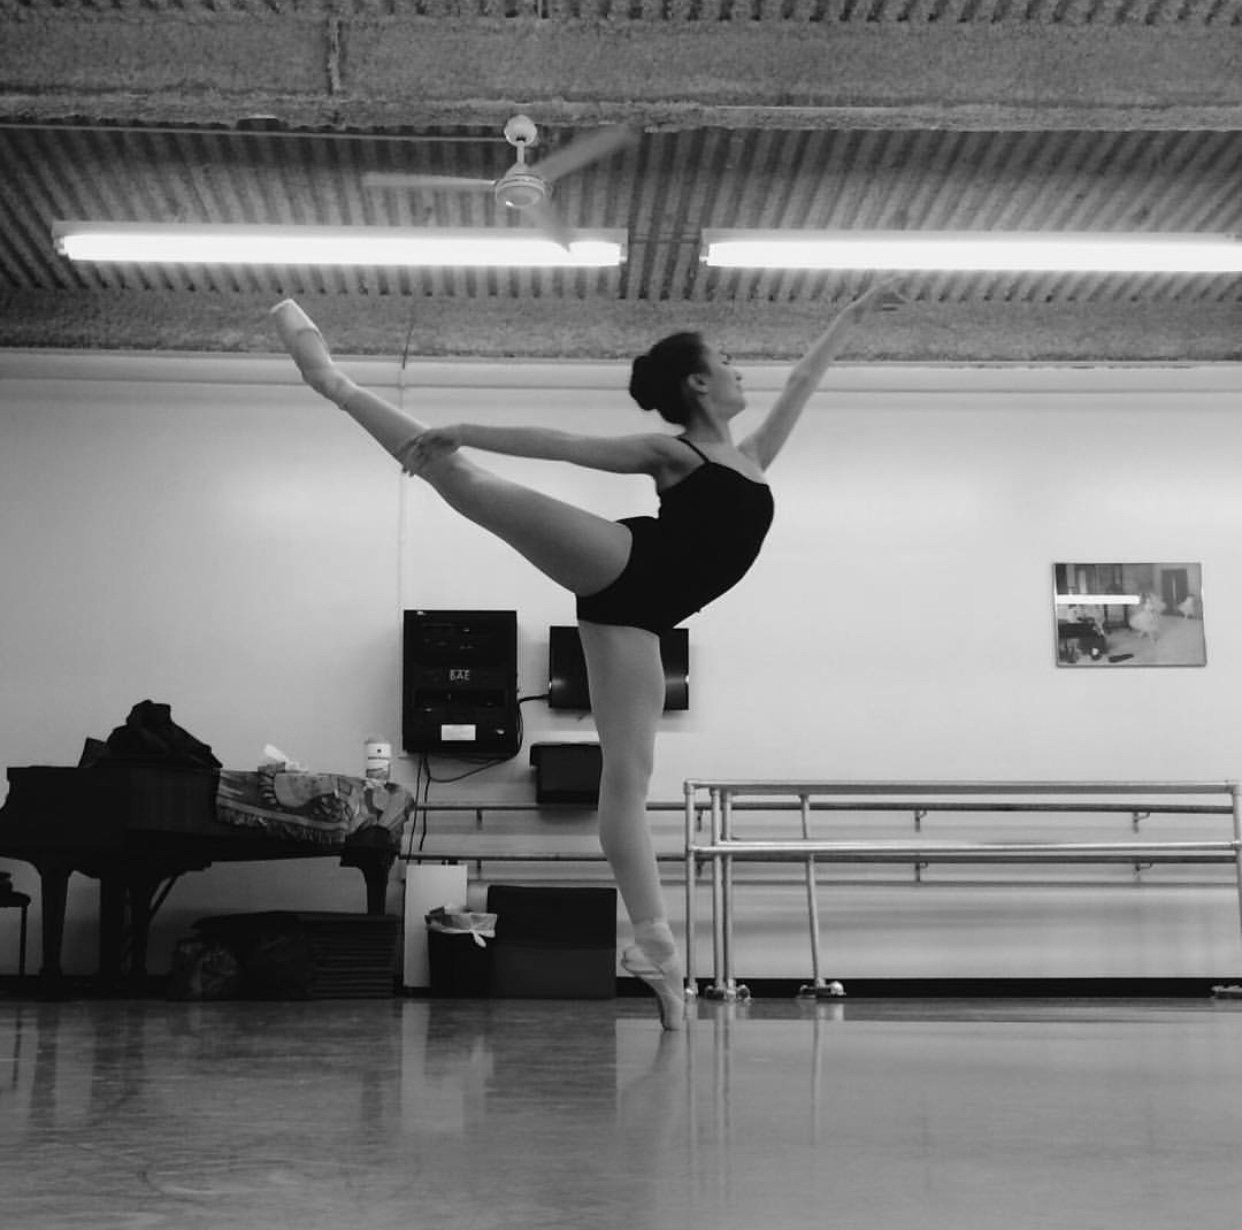 Isabella Henderson's intense practice routine involves spending over 40 hours a week in her ballet studio on the Upper East Side in Manhattan. Henderson balances this rehearsal schedule with a full Schreiber course load.